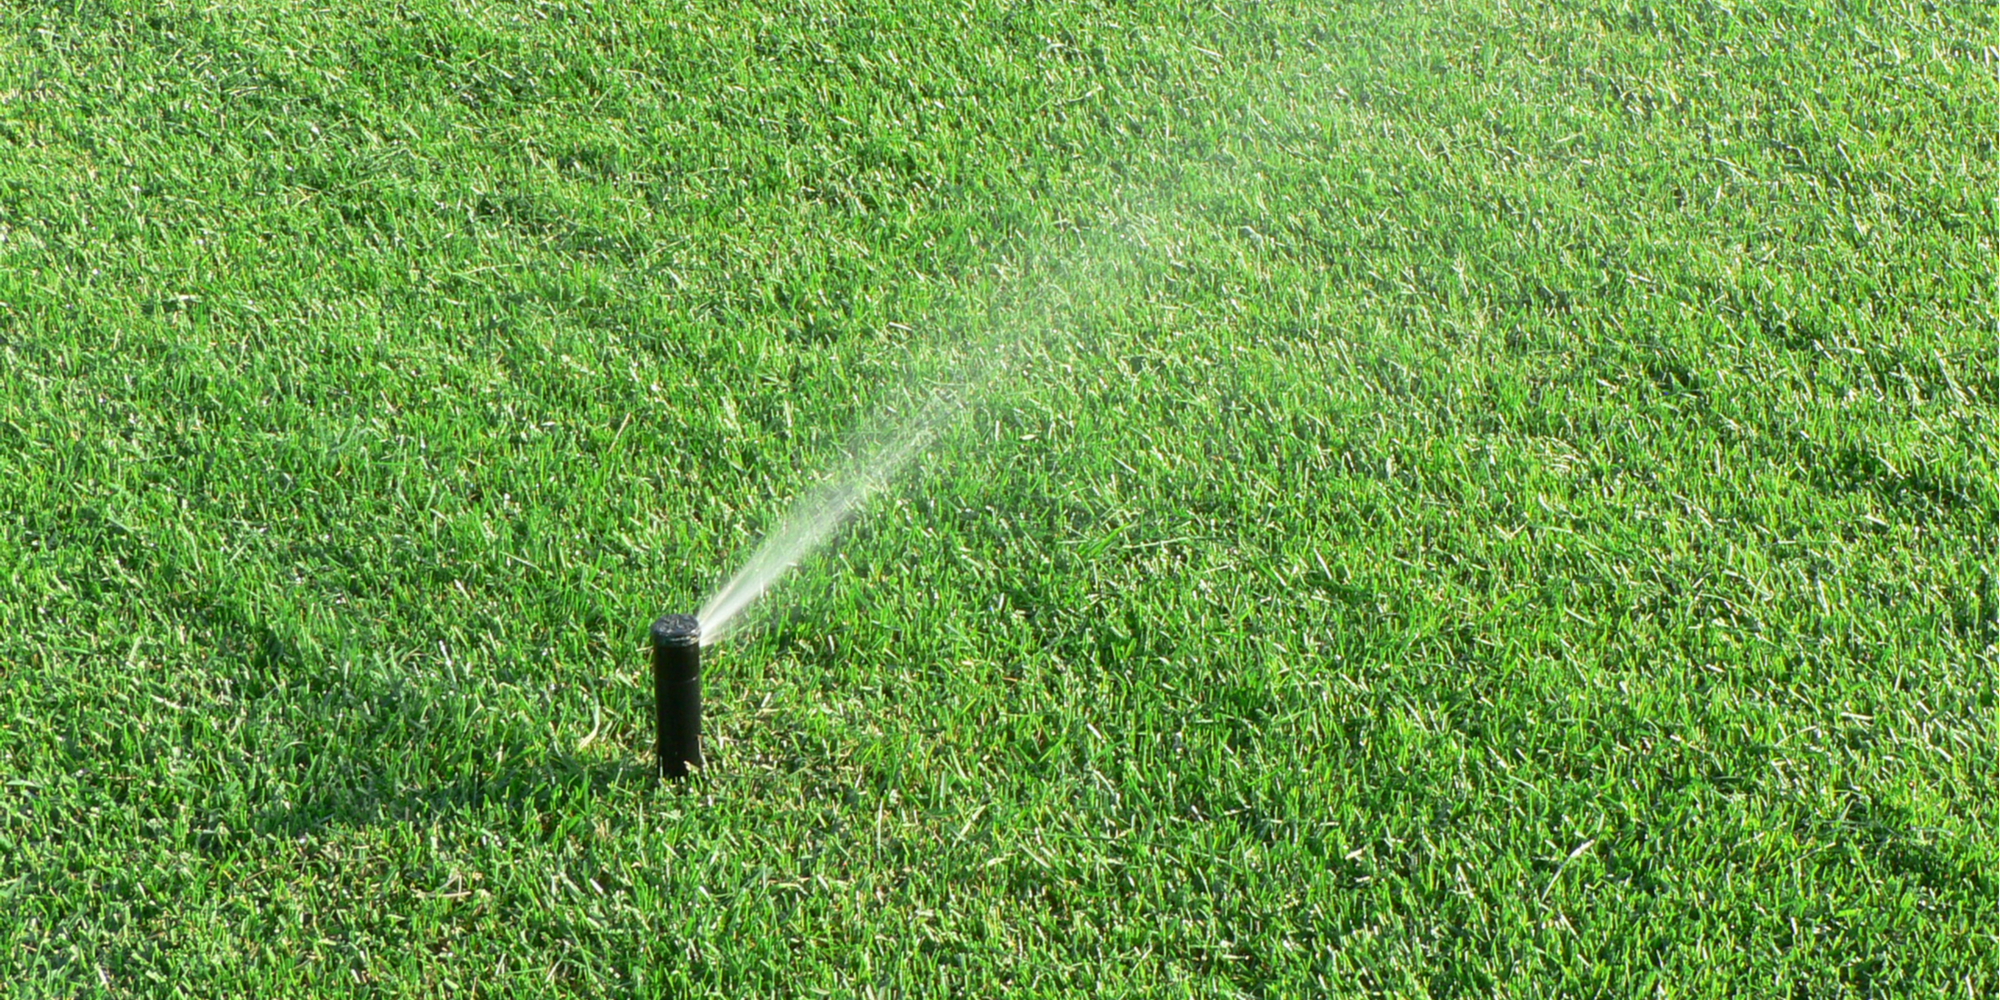 blow out your sprinkler lines | how to | sprinkler lines | how to blow out your sprinkler lines | yard maintenance | homeowner